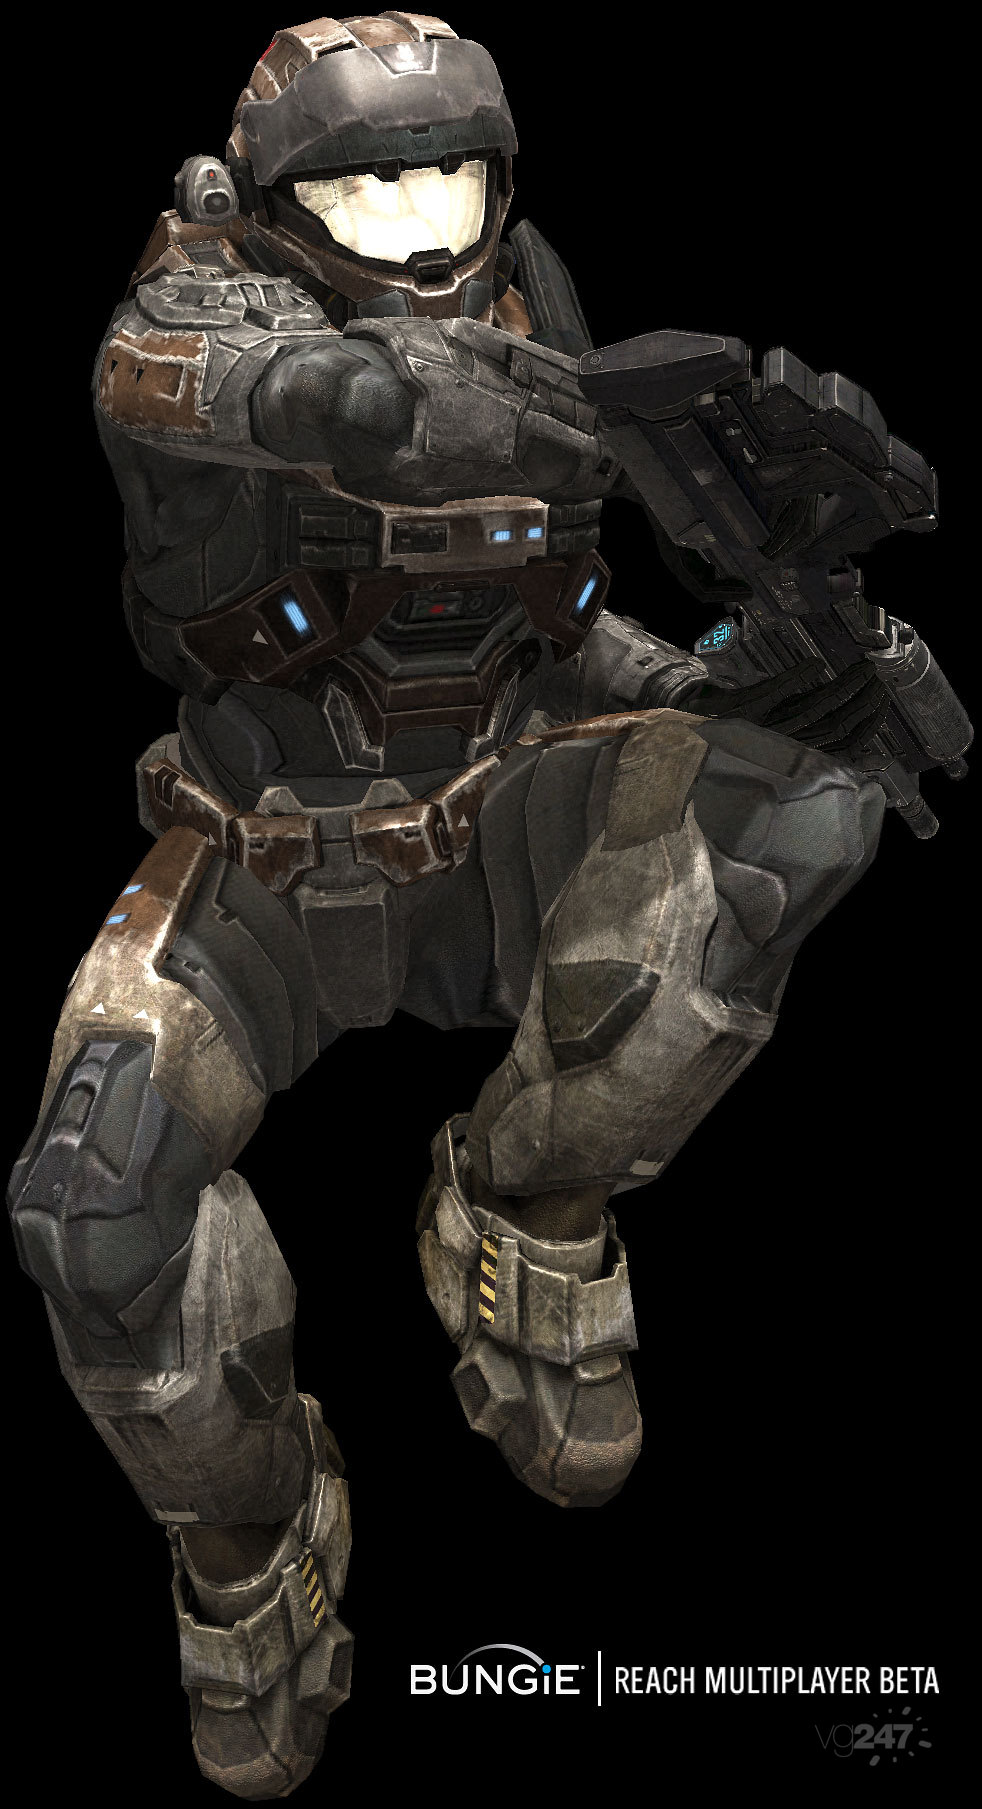 Hands-on with the Halo: Reach multiplayer beta - VG247